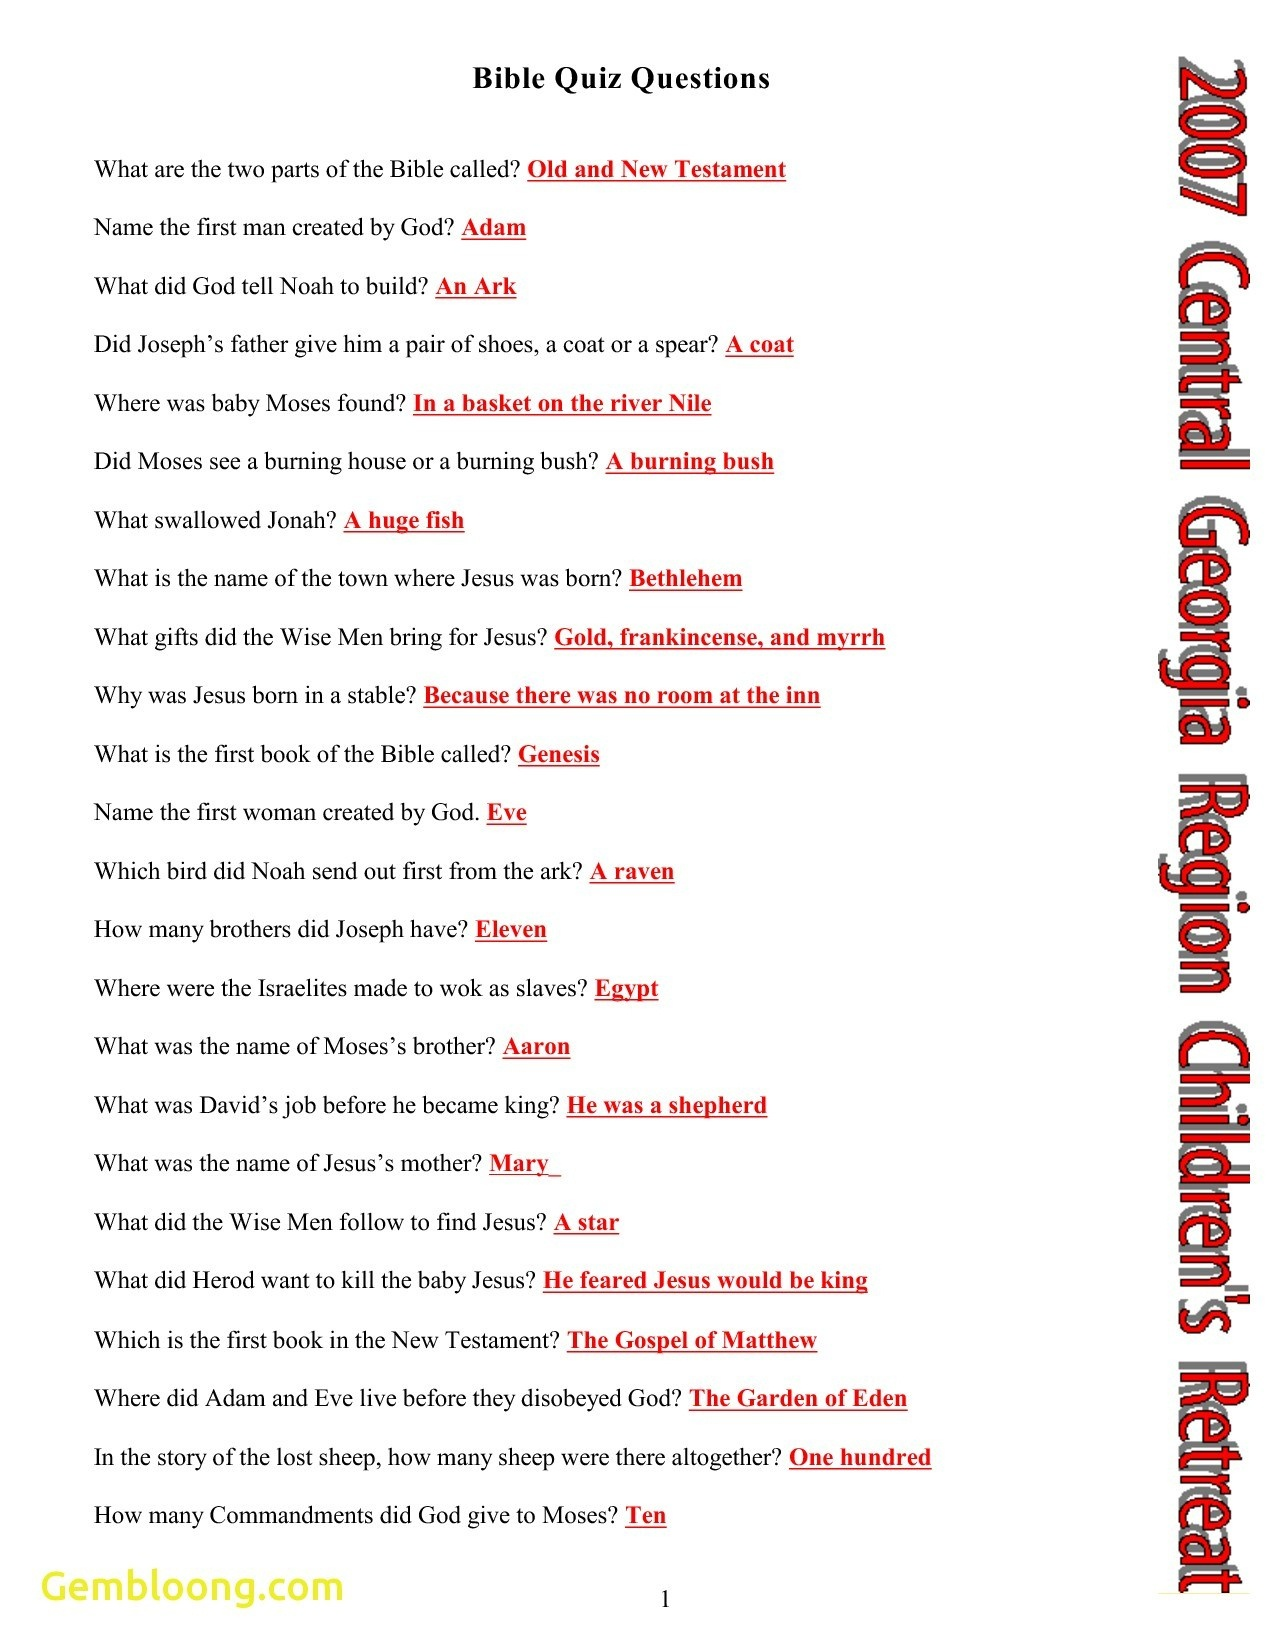 Bible Trivia Printable (90+ Images In Collection) Page 1 - Free Printable Bible Trivia Questions And Answers